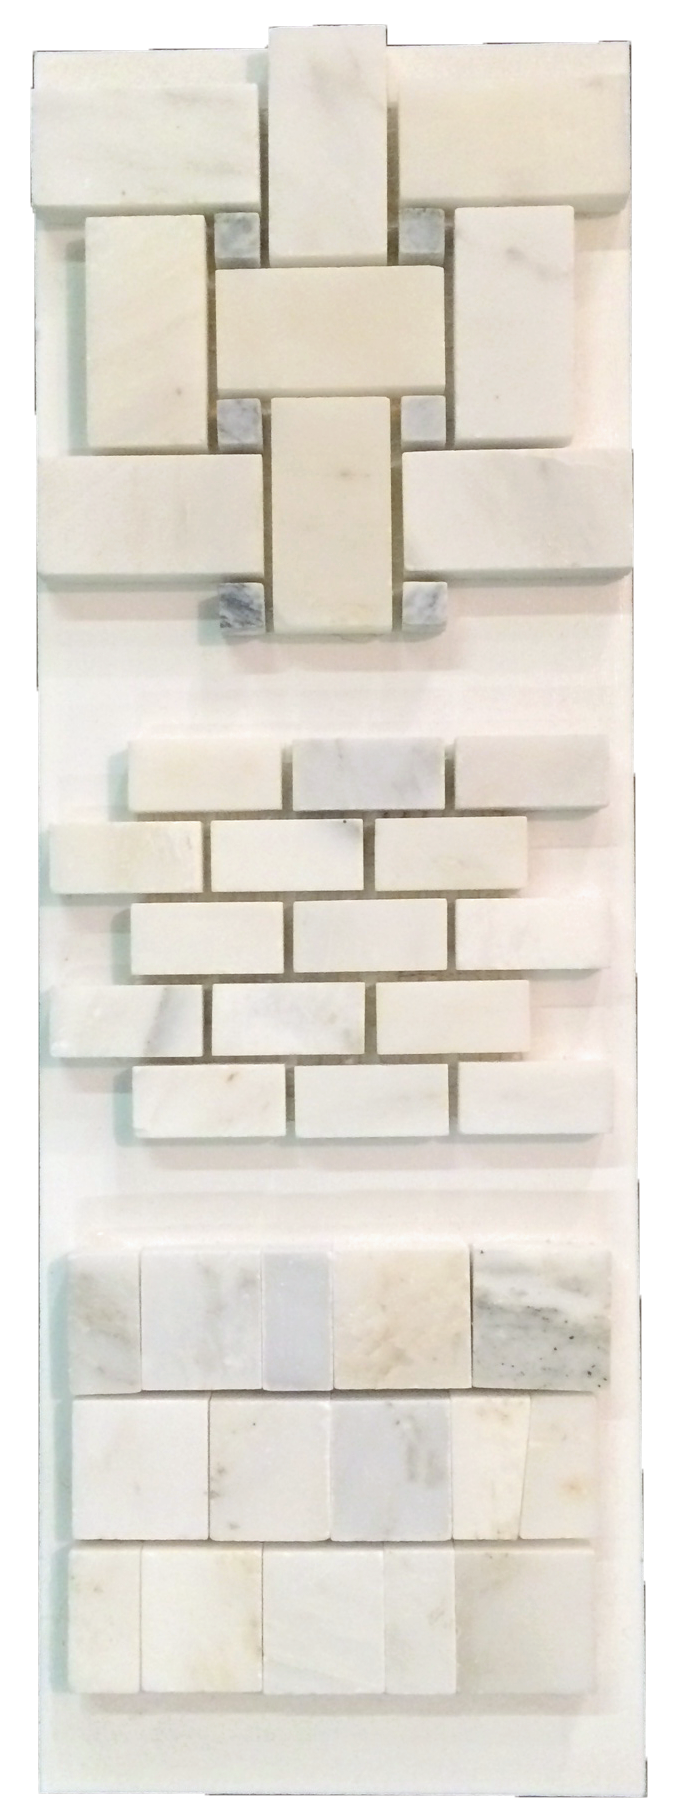 "C18 - Basketweave Pearl White with 3/8"" Pacific Gray dot; Mini Brick and Random Broken Joint Honed - Elon Tile"